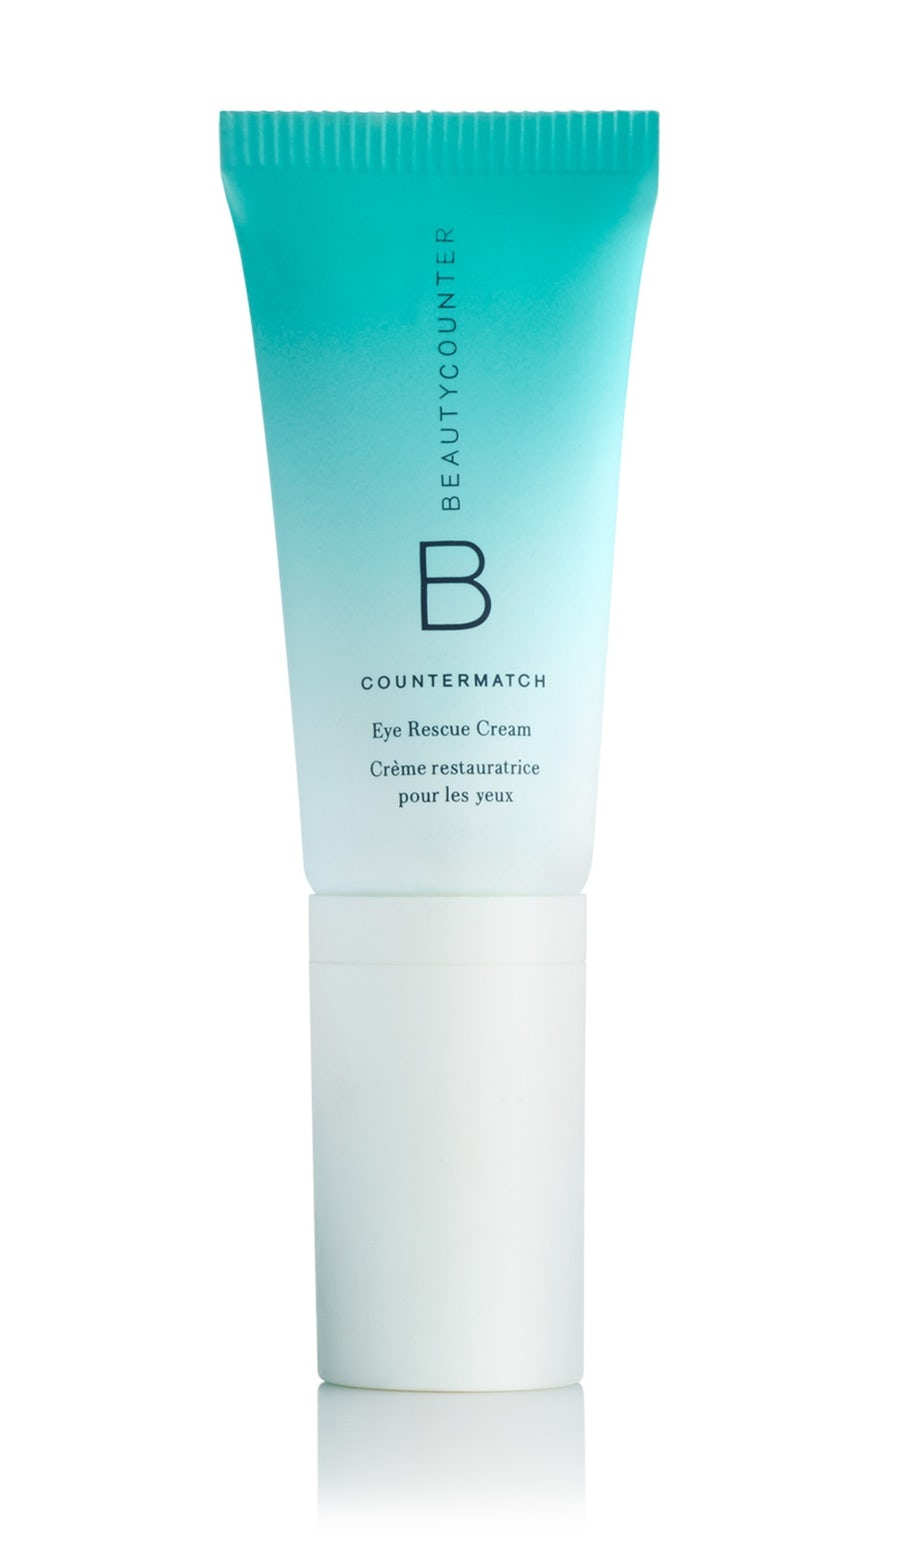 #1 - Beautycounter Countermatch Eye Rescue Cream